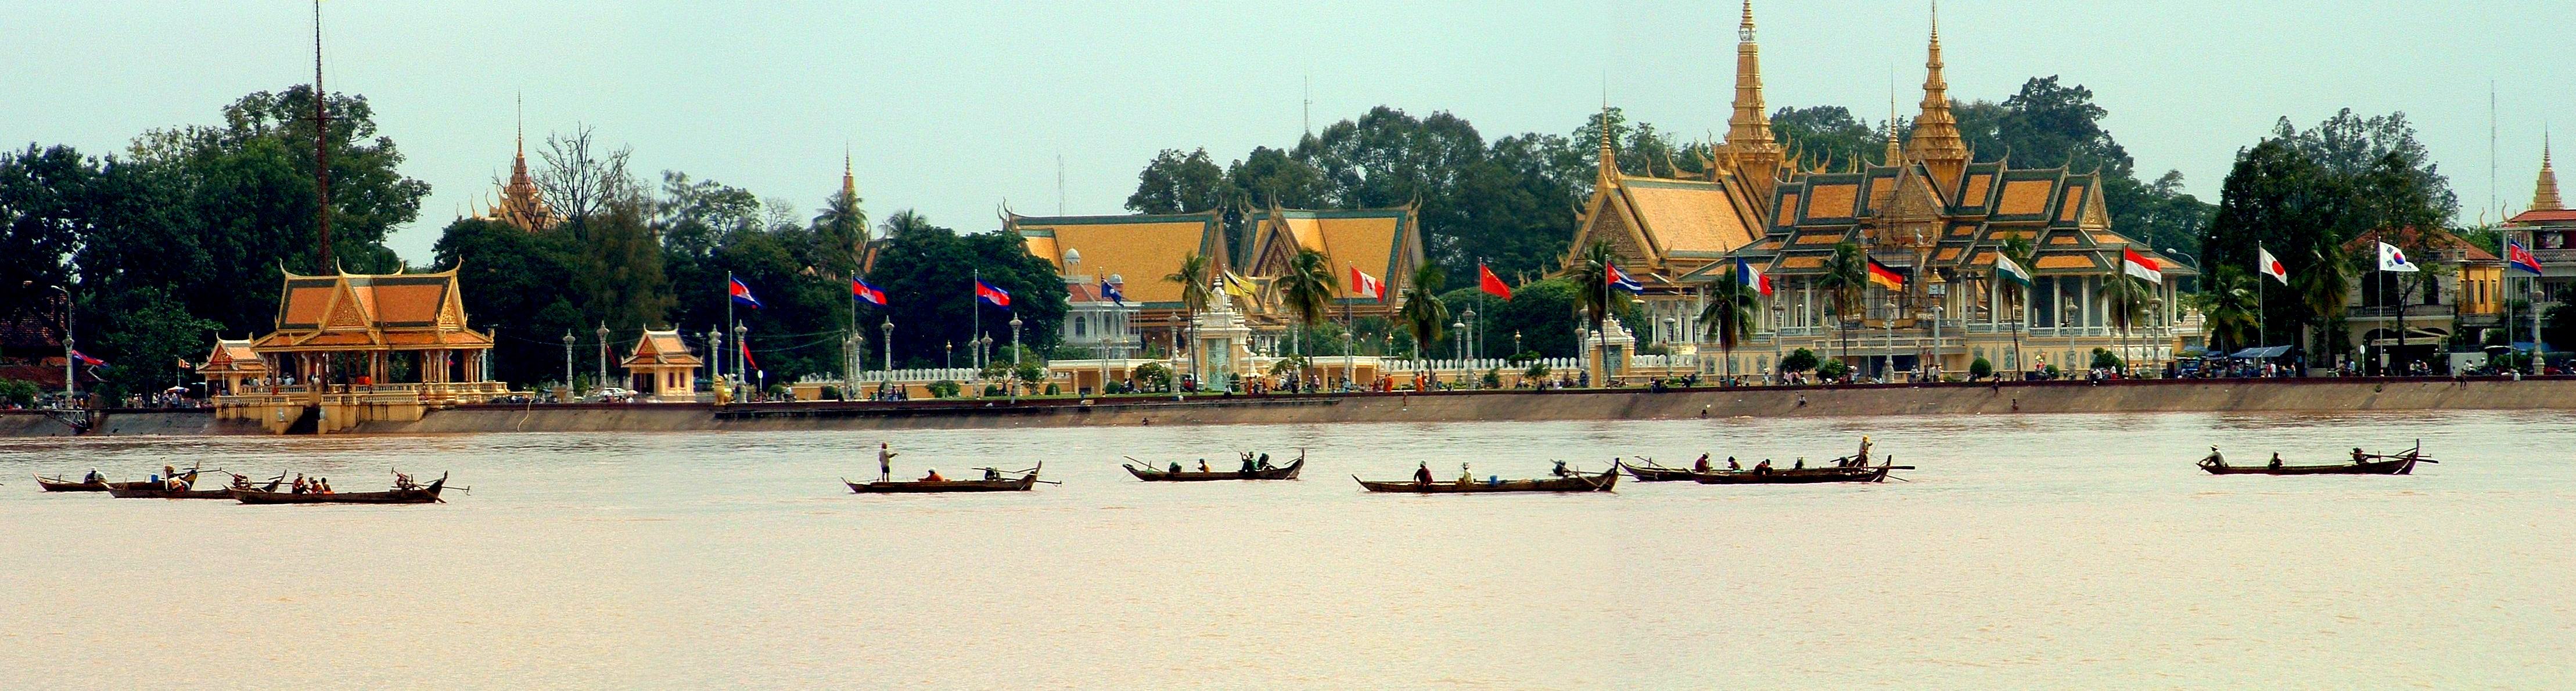 Cambodia, Phnom Penh, Royal Palace as seen from acros Tonle Sap River.jpg